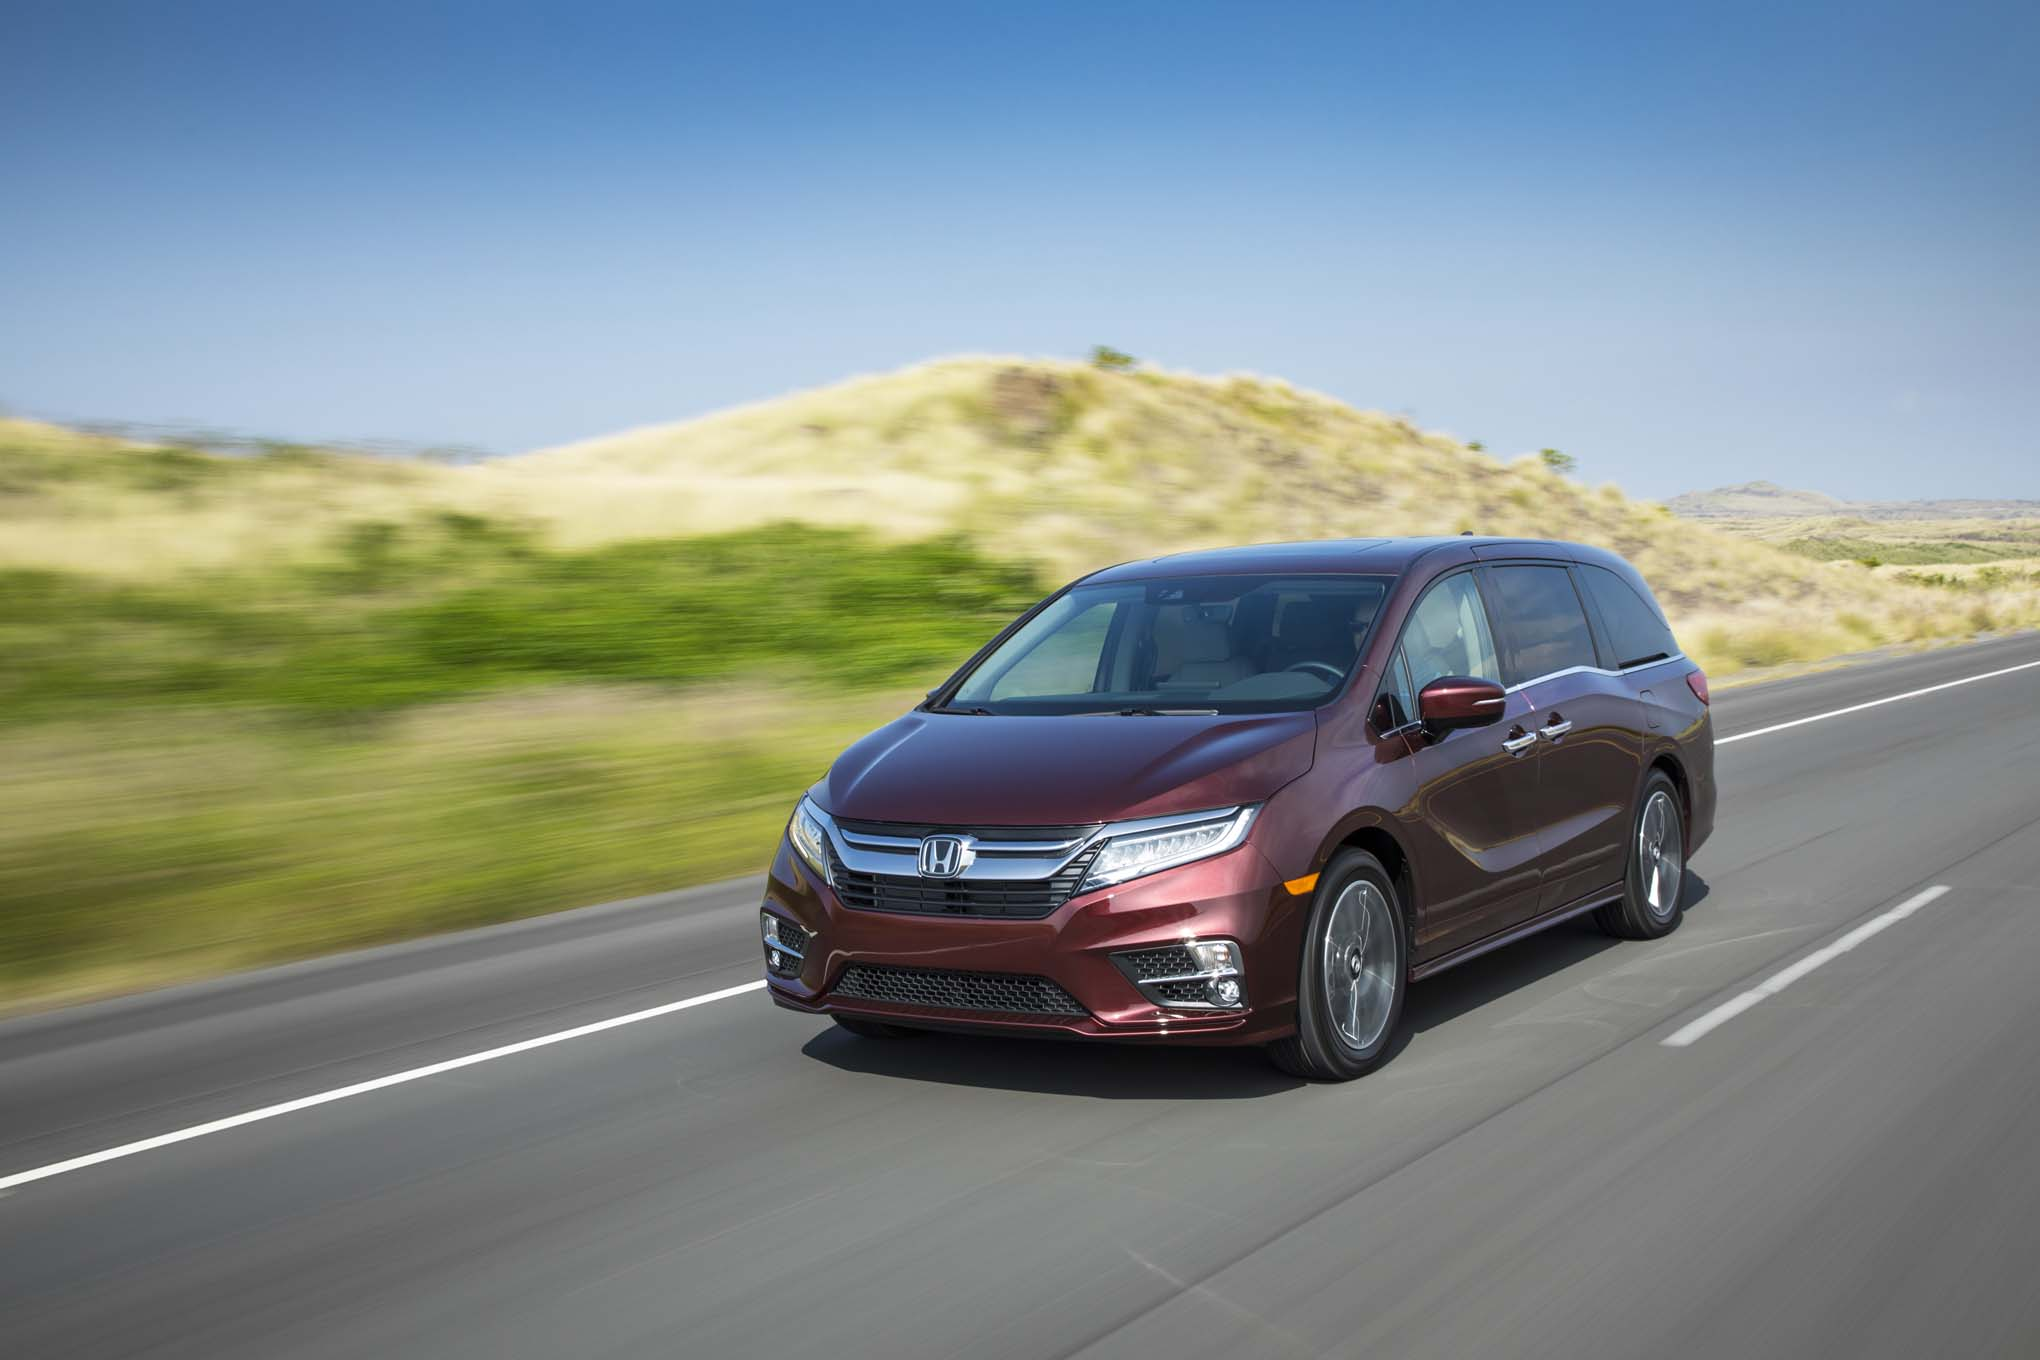 2018 Honda Odyssey Front Three Quarter In Motion 11